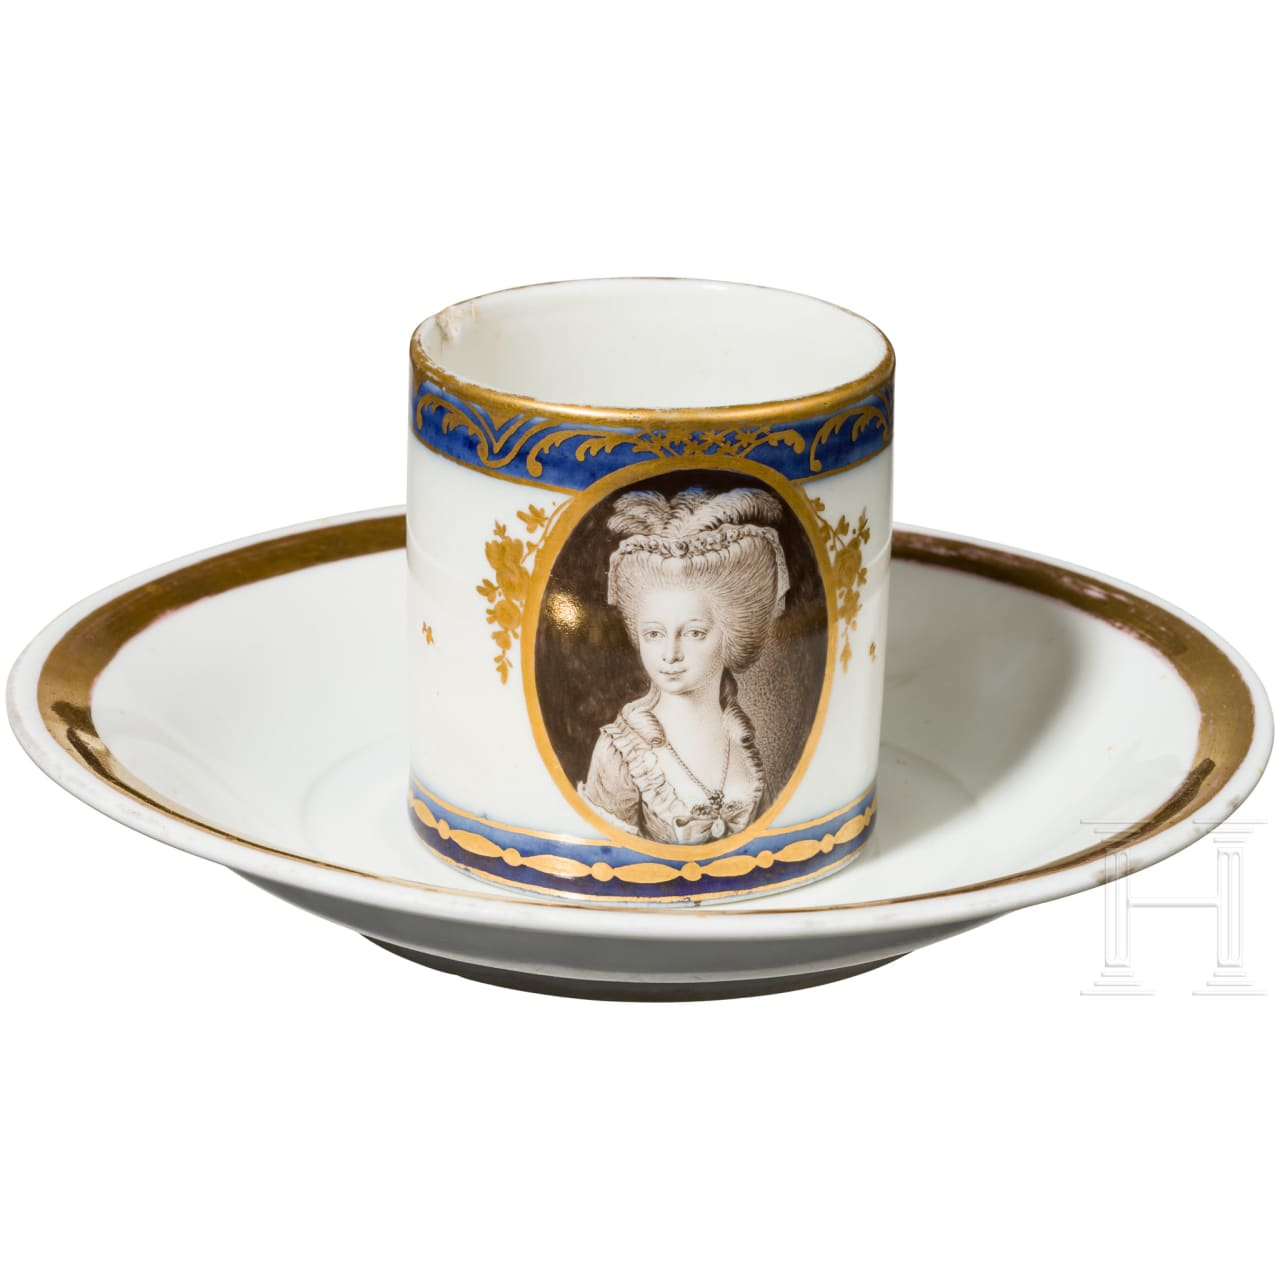 Cup with portrait of a lady, late 18th century